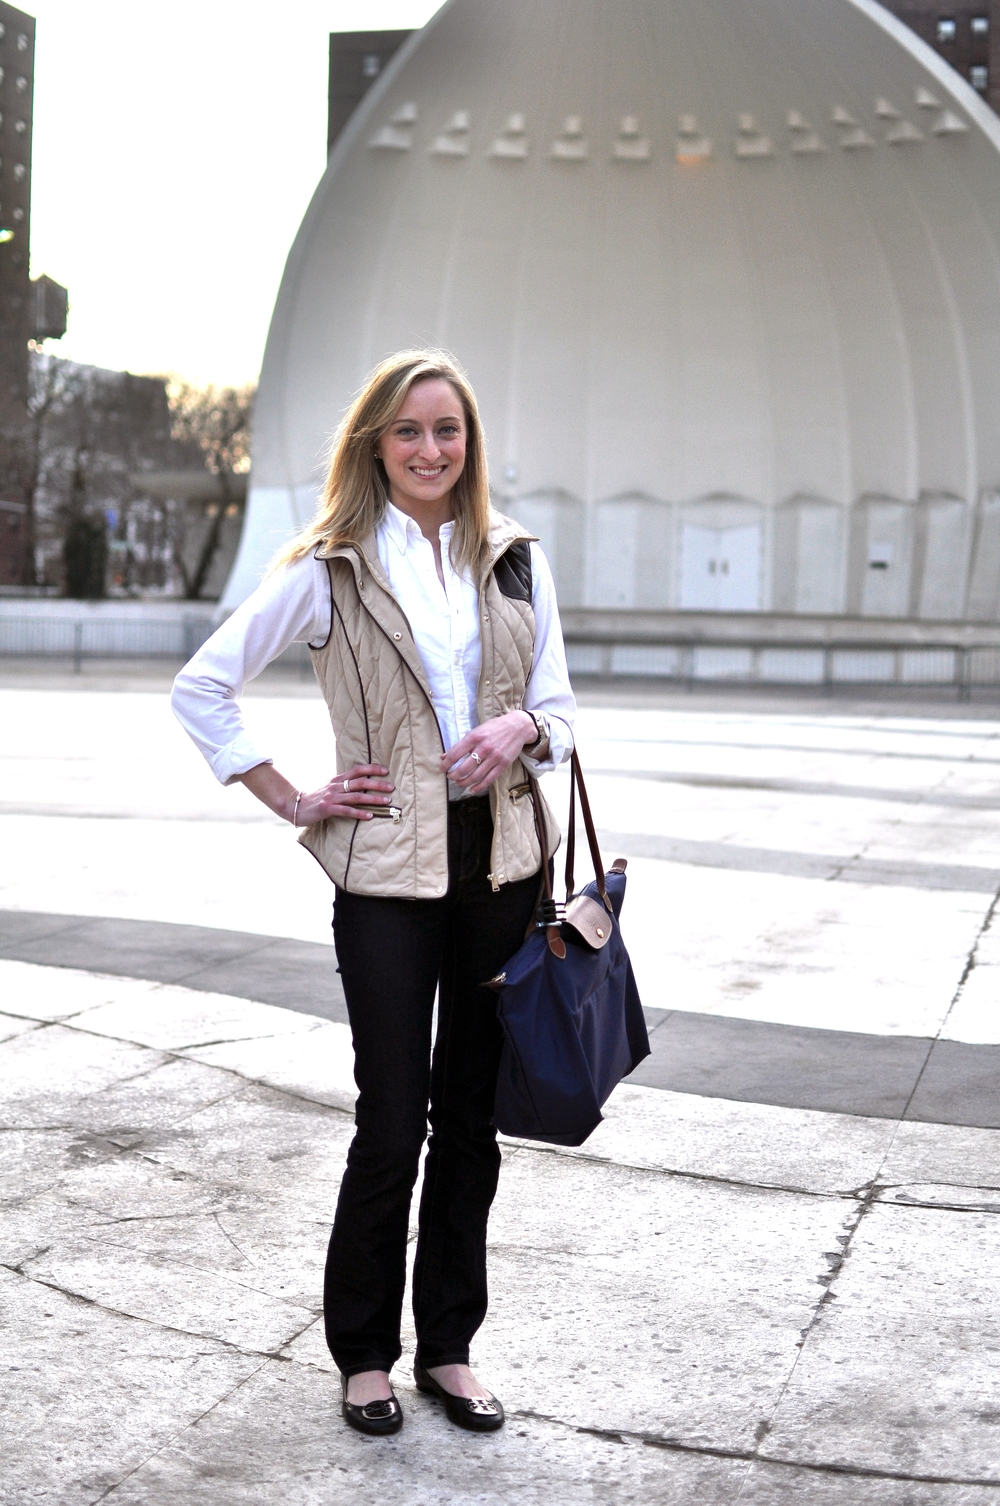 Molly | Fordham University  Taupe Quilted Vest  White Oxford Shirt  Dark Wash Jeans  Tory Burch Flats  Blue Tote Bag